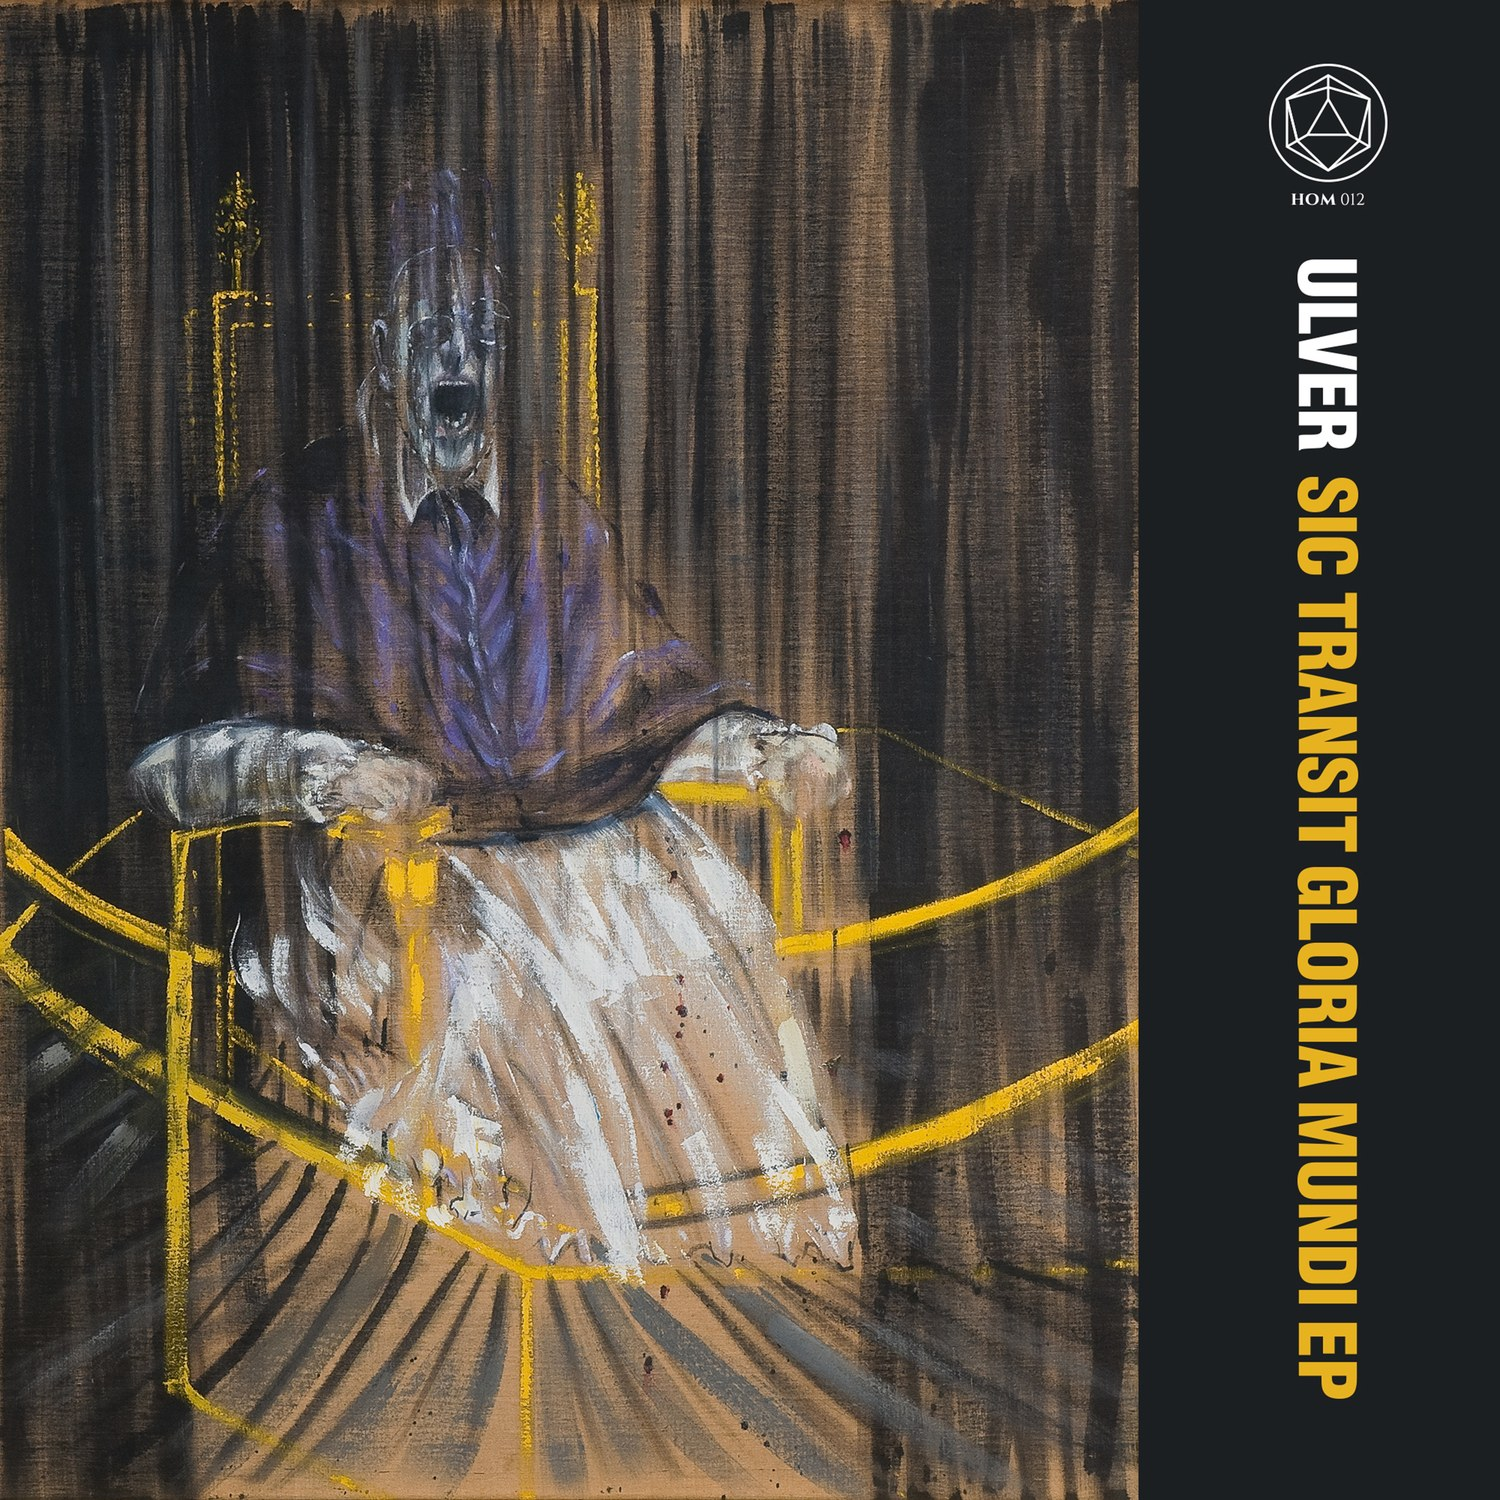 Review for Ulver - Sic Transit Gloria Mundi